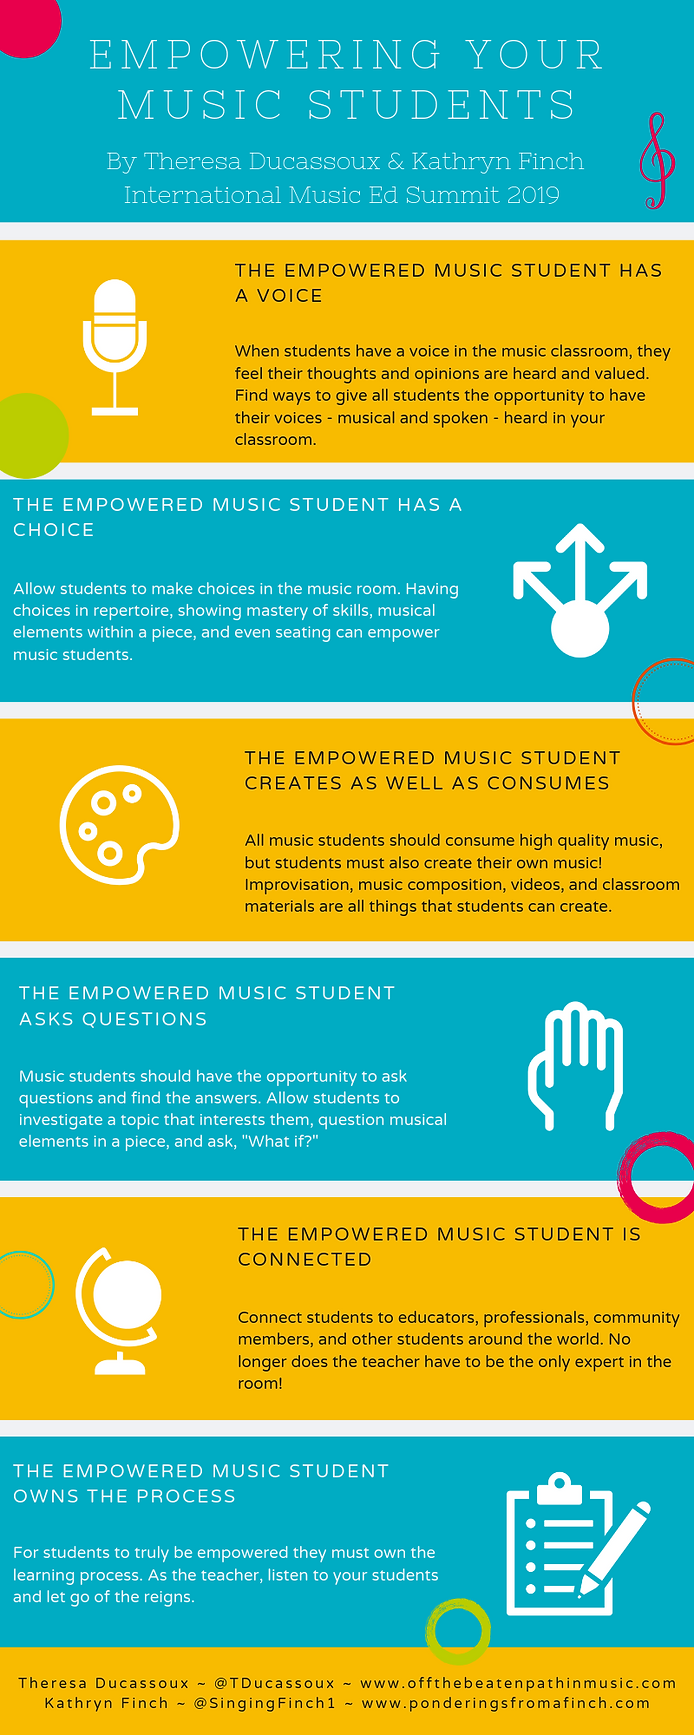 Empowering Your Music Students - IMES (1